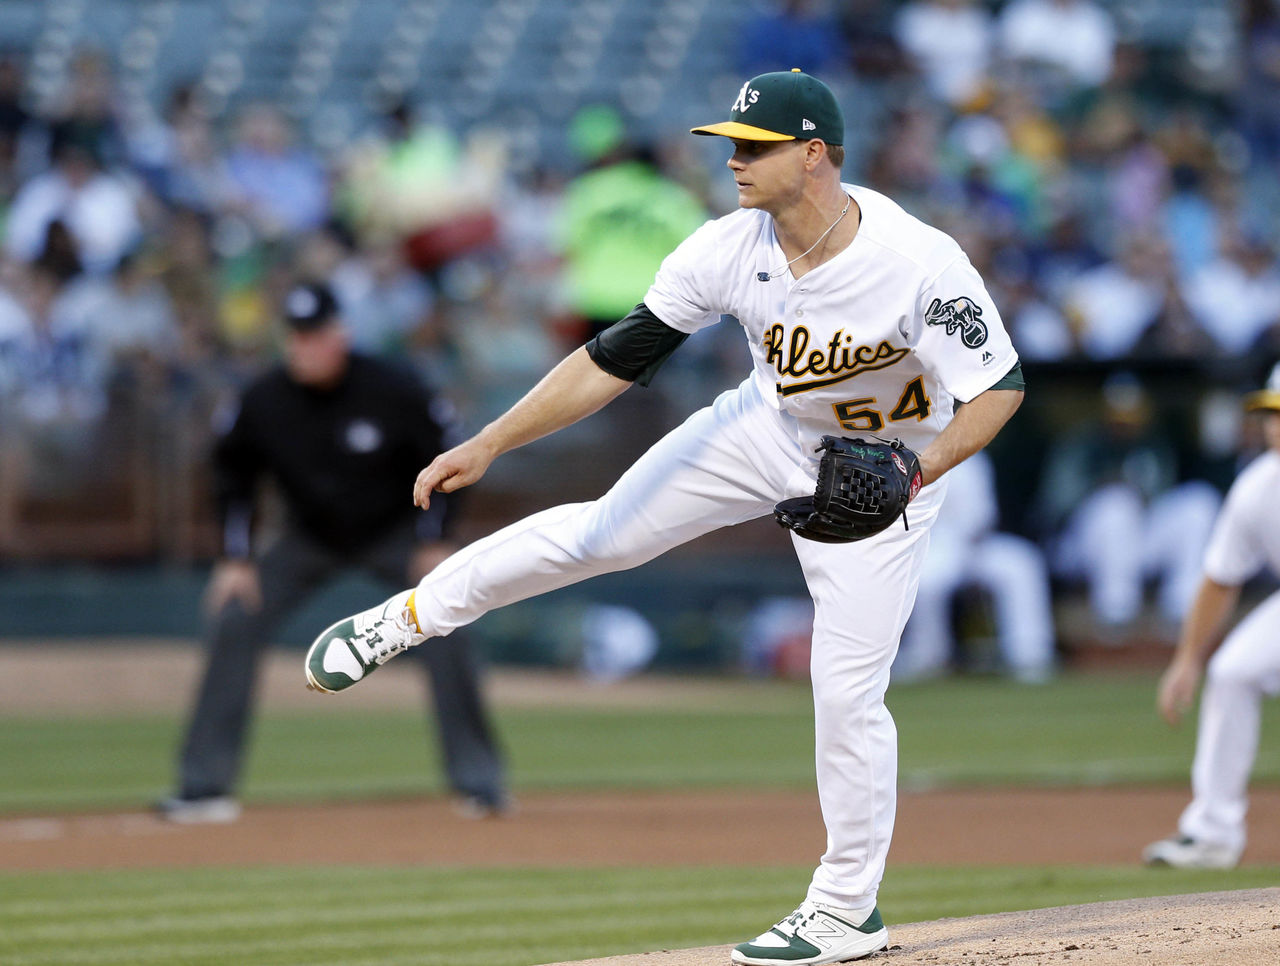 Cropped 2017 06 16t031809z 2145717673 nocid rtrmadp 3 mlb new york yankees at oakland athletics